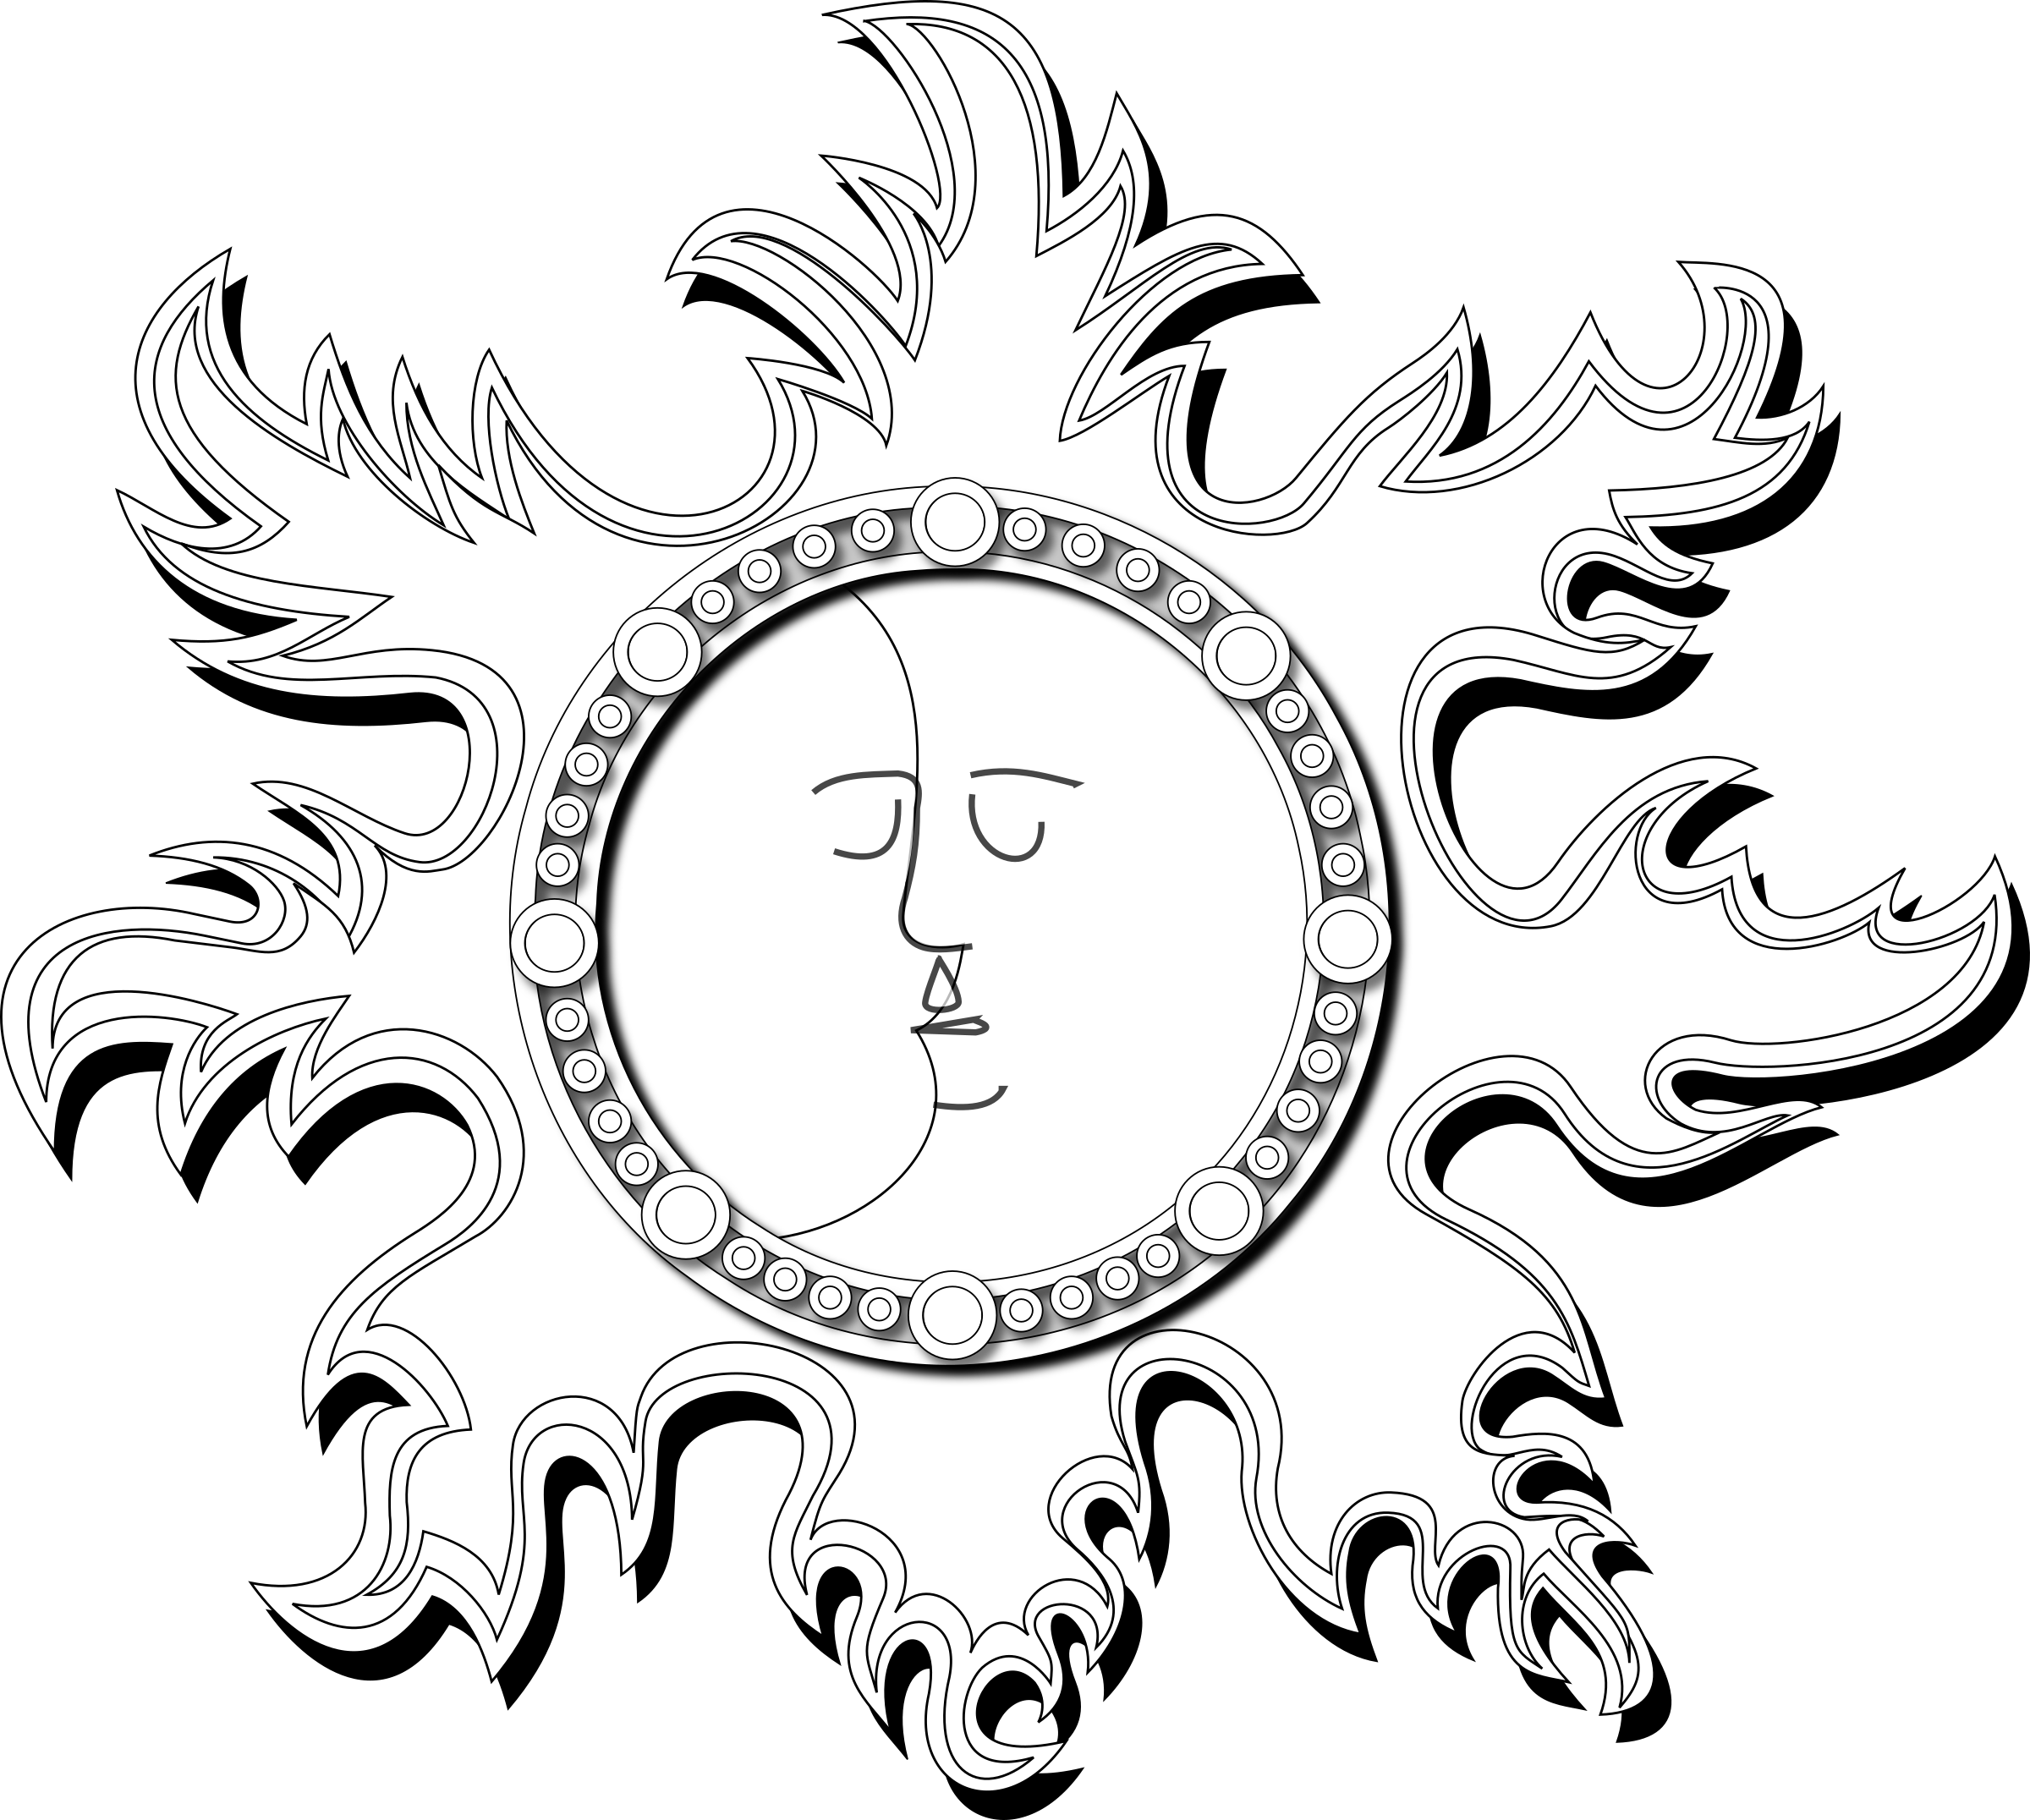 Sun outline clipart clip art freeuse Moon Outline Drawing at GetDrawings.com | Free for personal use Moon ... clip art freeuse